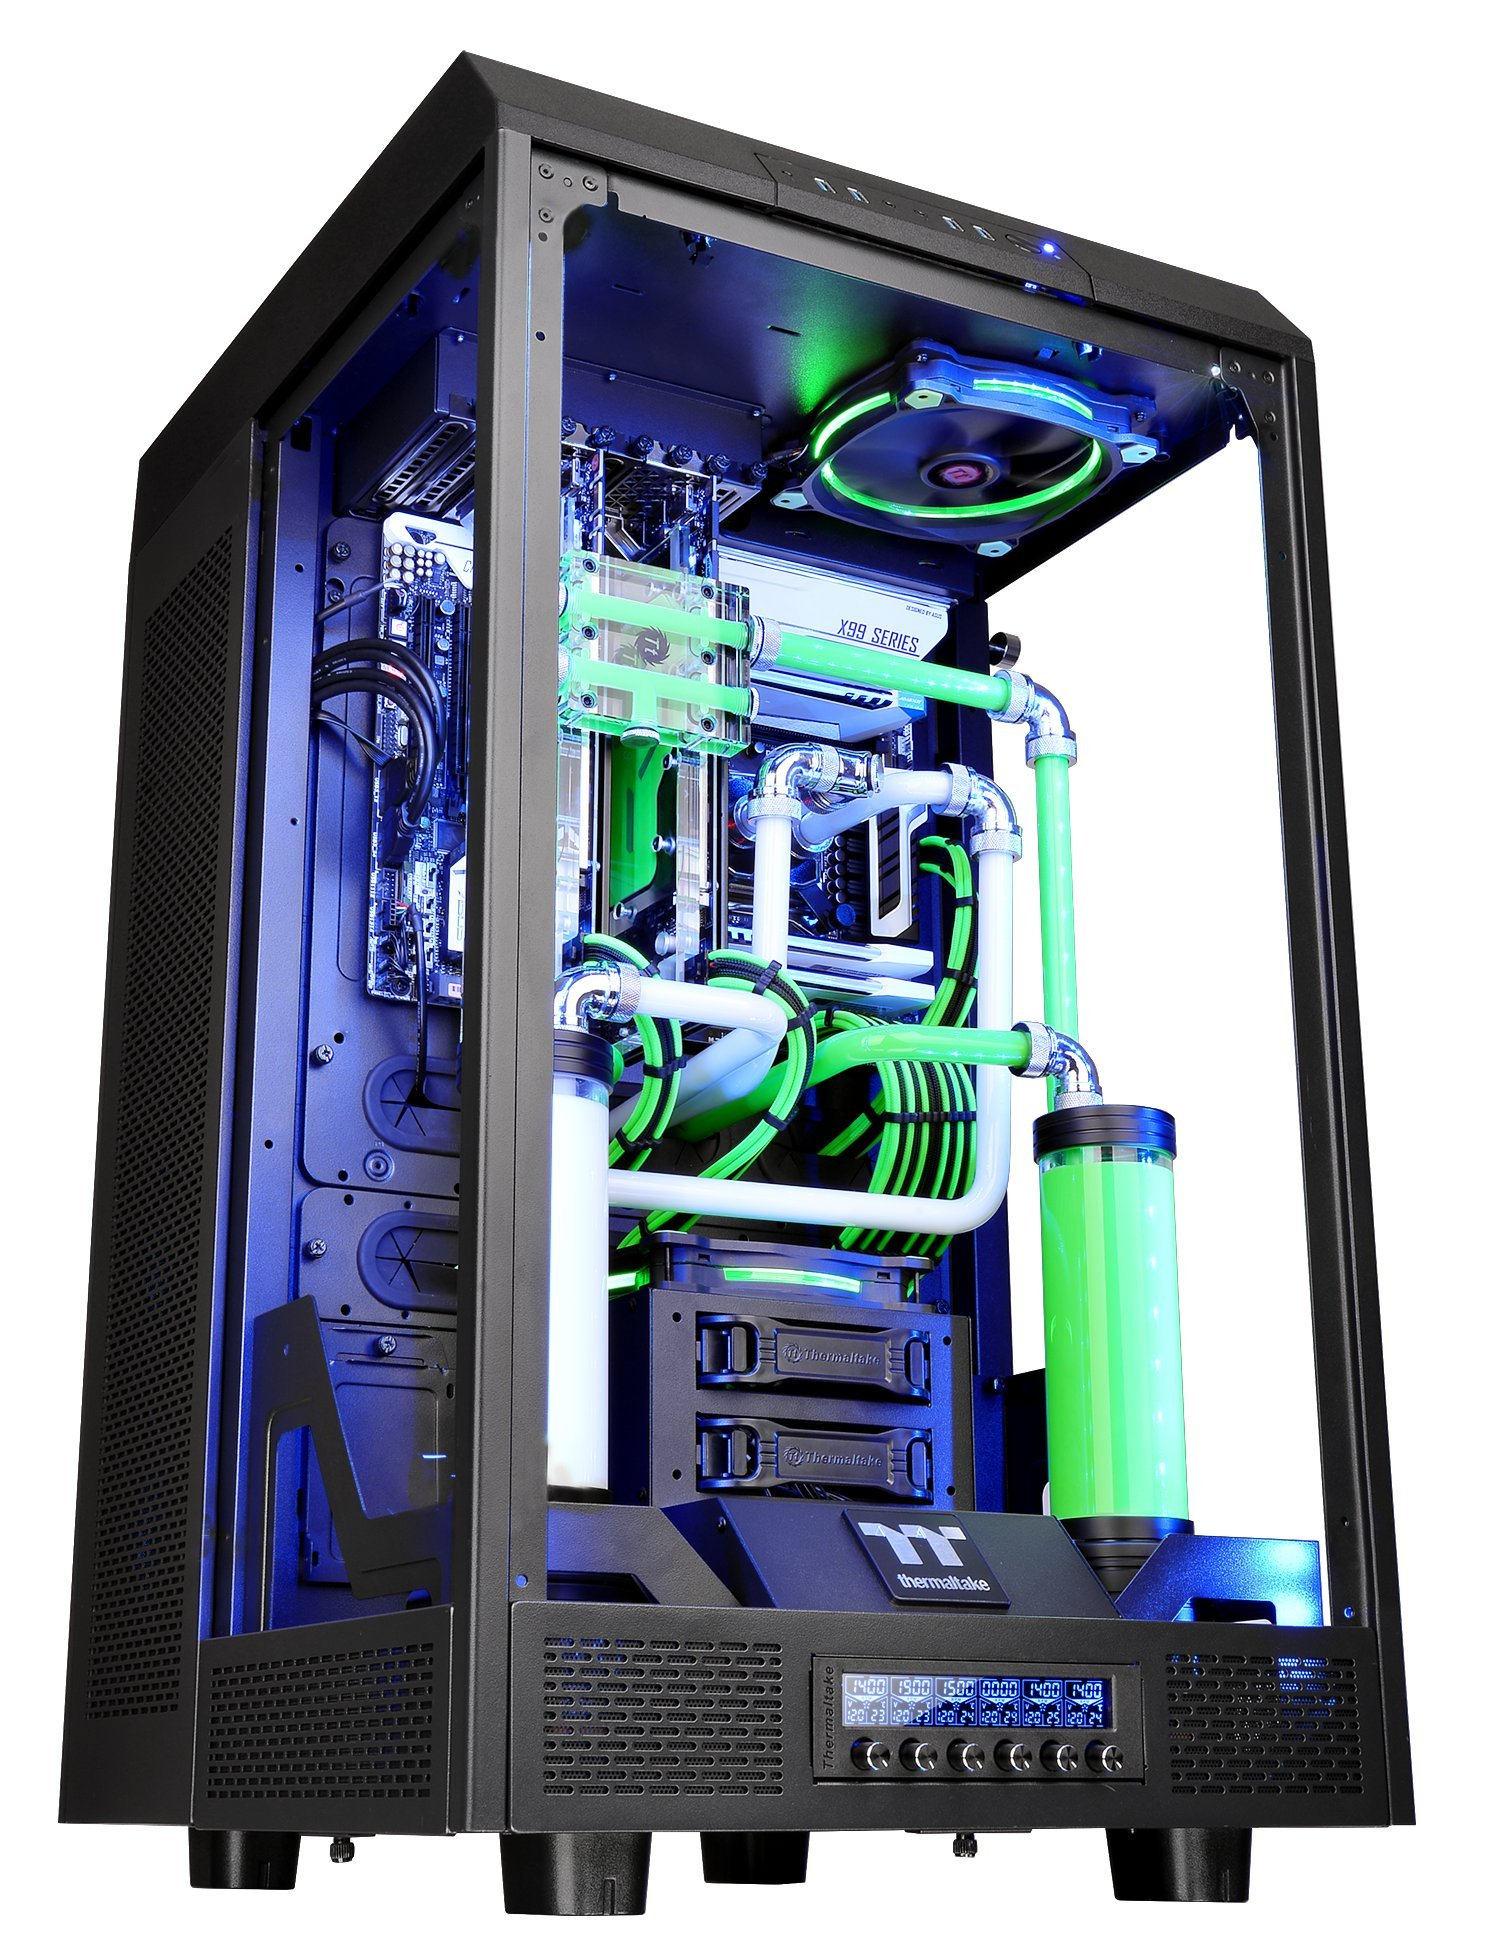 Thermaltake Tower 900 Black Edition Tempered Glass Fully Modular E-ATX Vertical Super Tower Computer Chassis CA-1H1-00F1WN-00 by Thermaltake